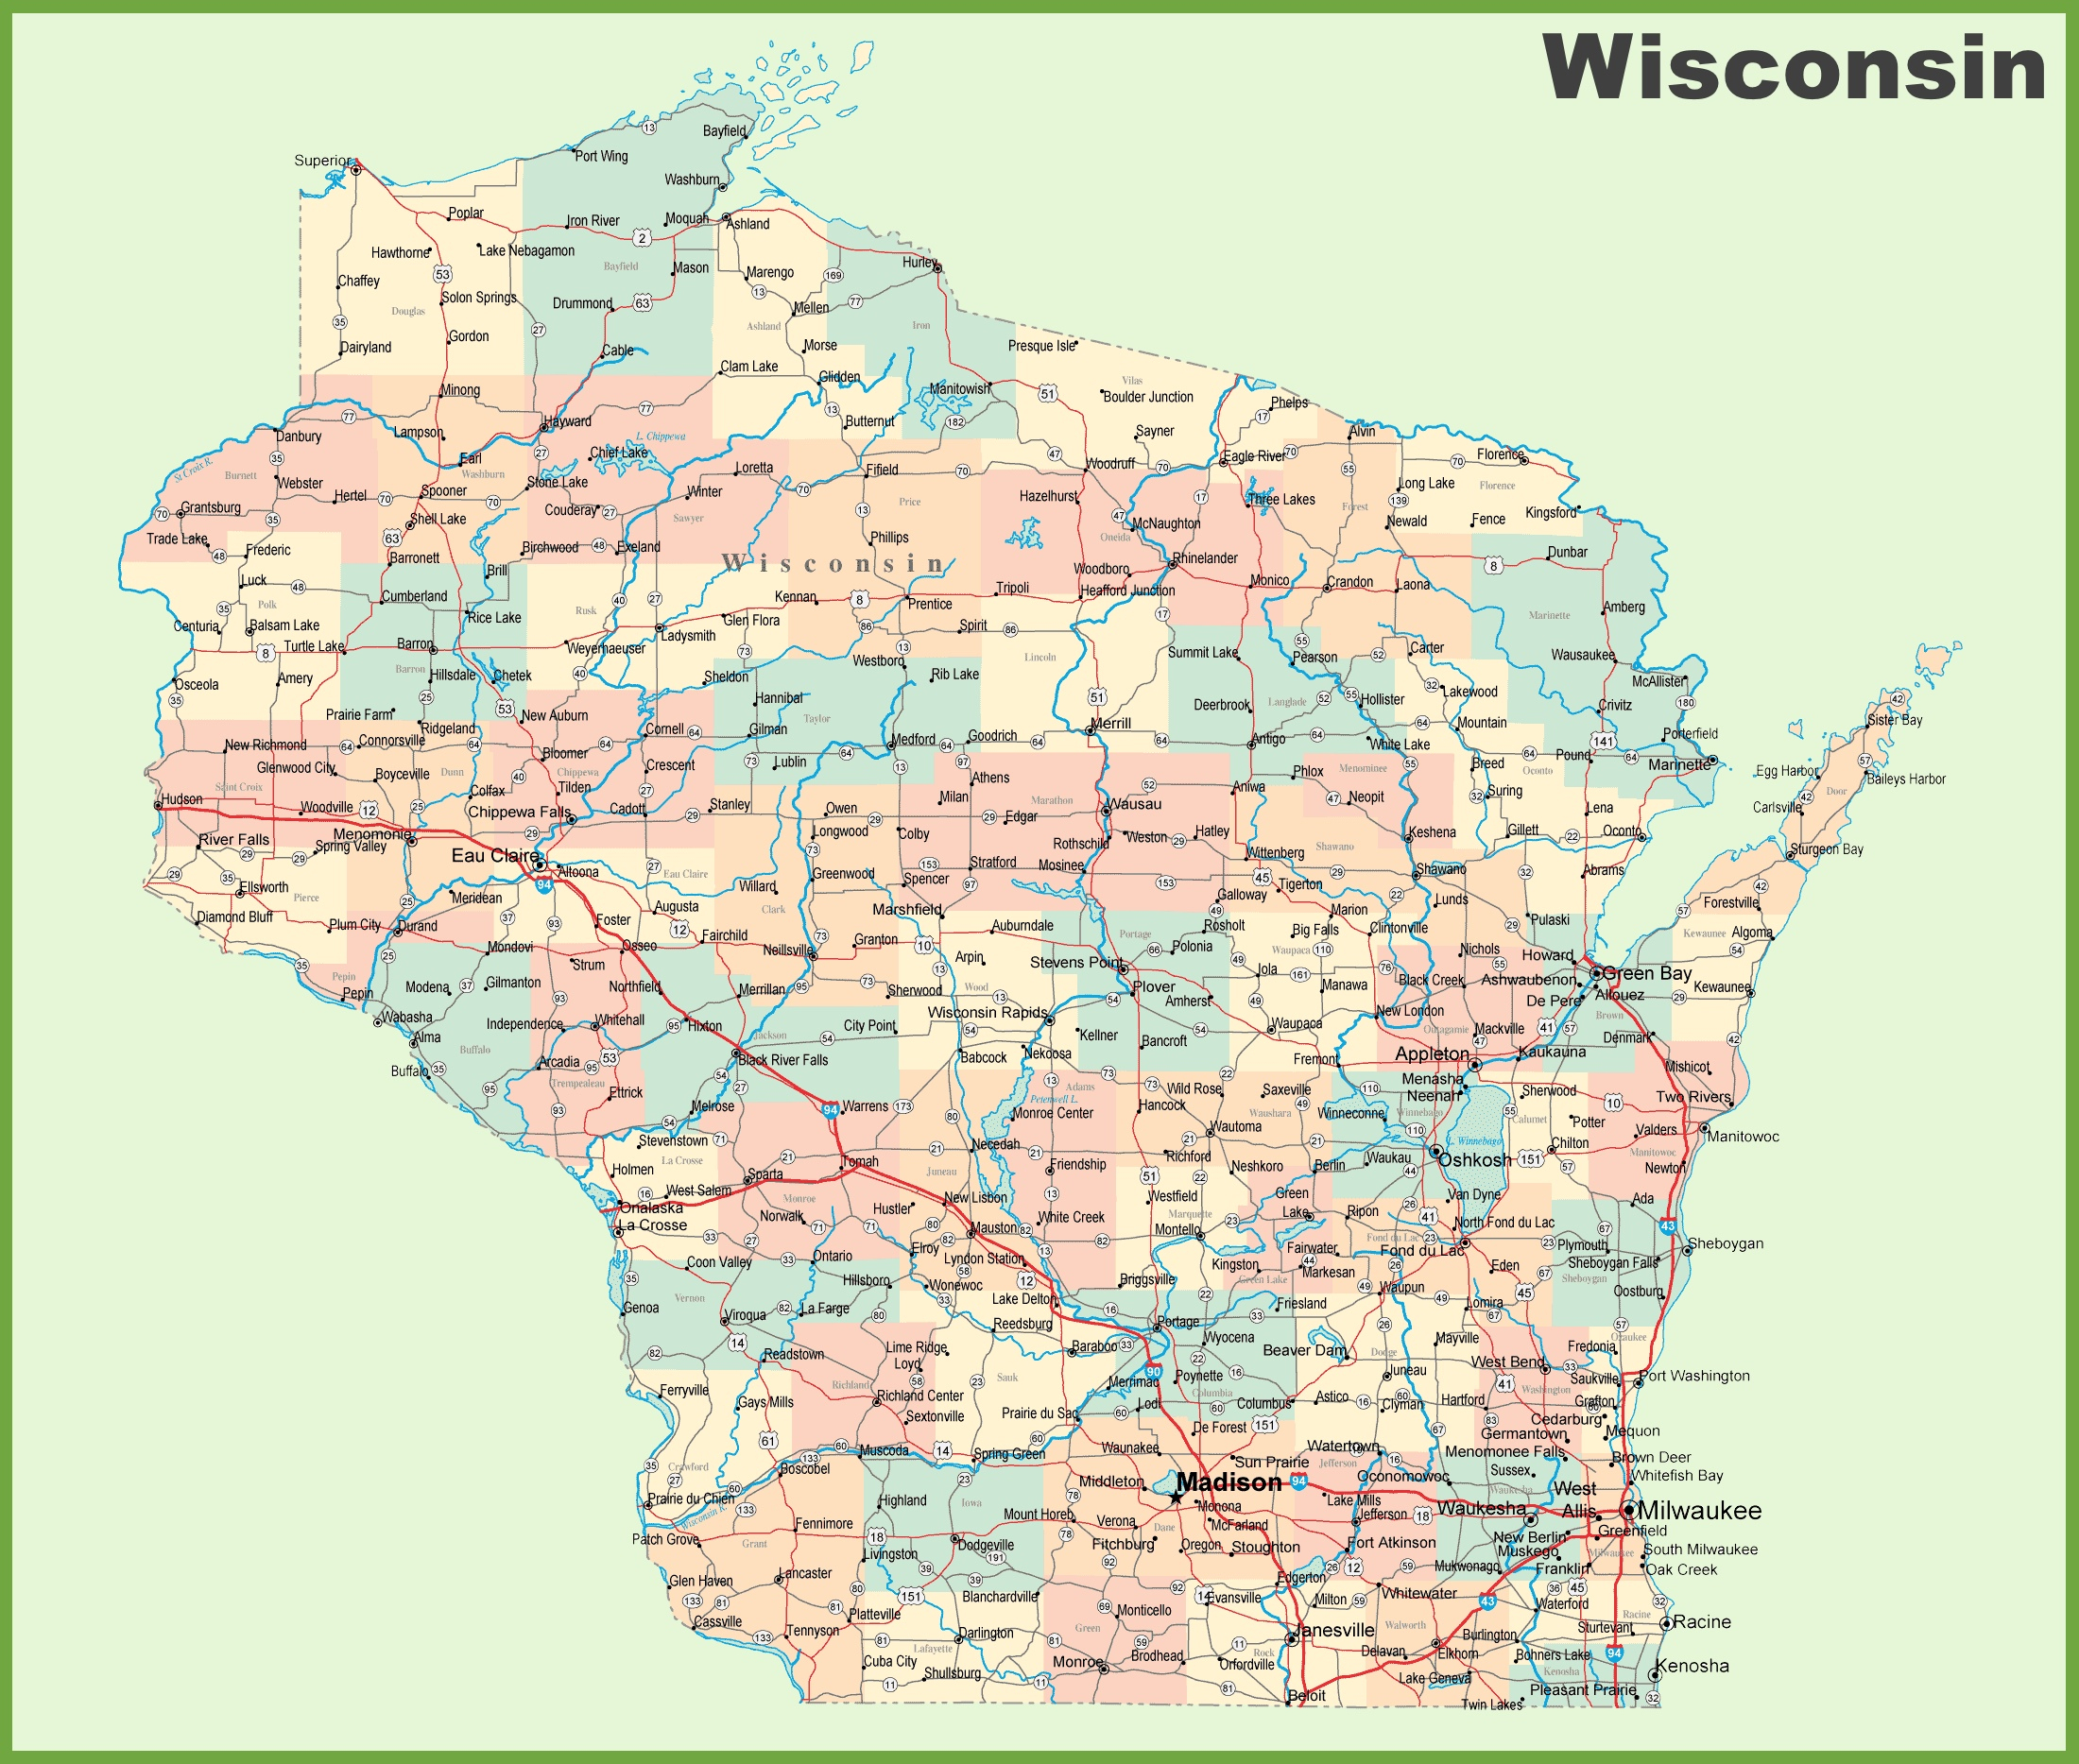 Road Map Of Wisconsin With Cities - Wisconsin Road Map Printable